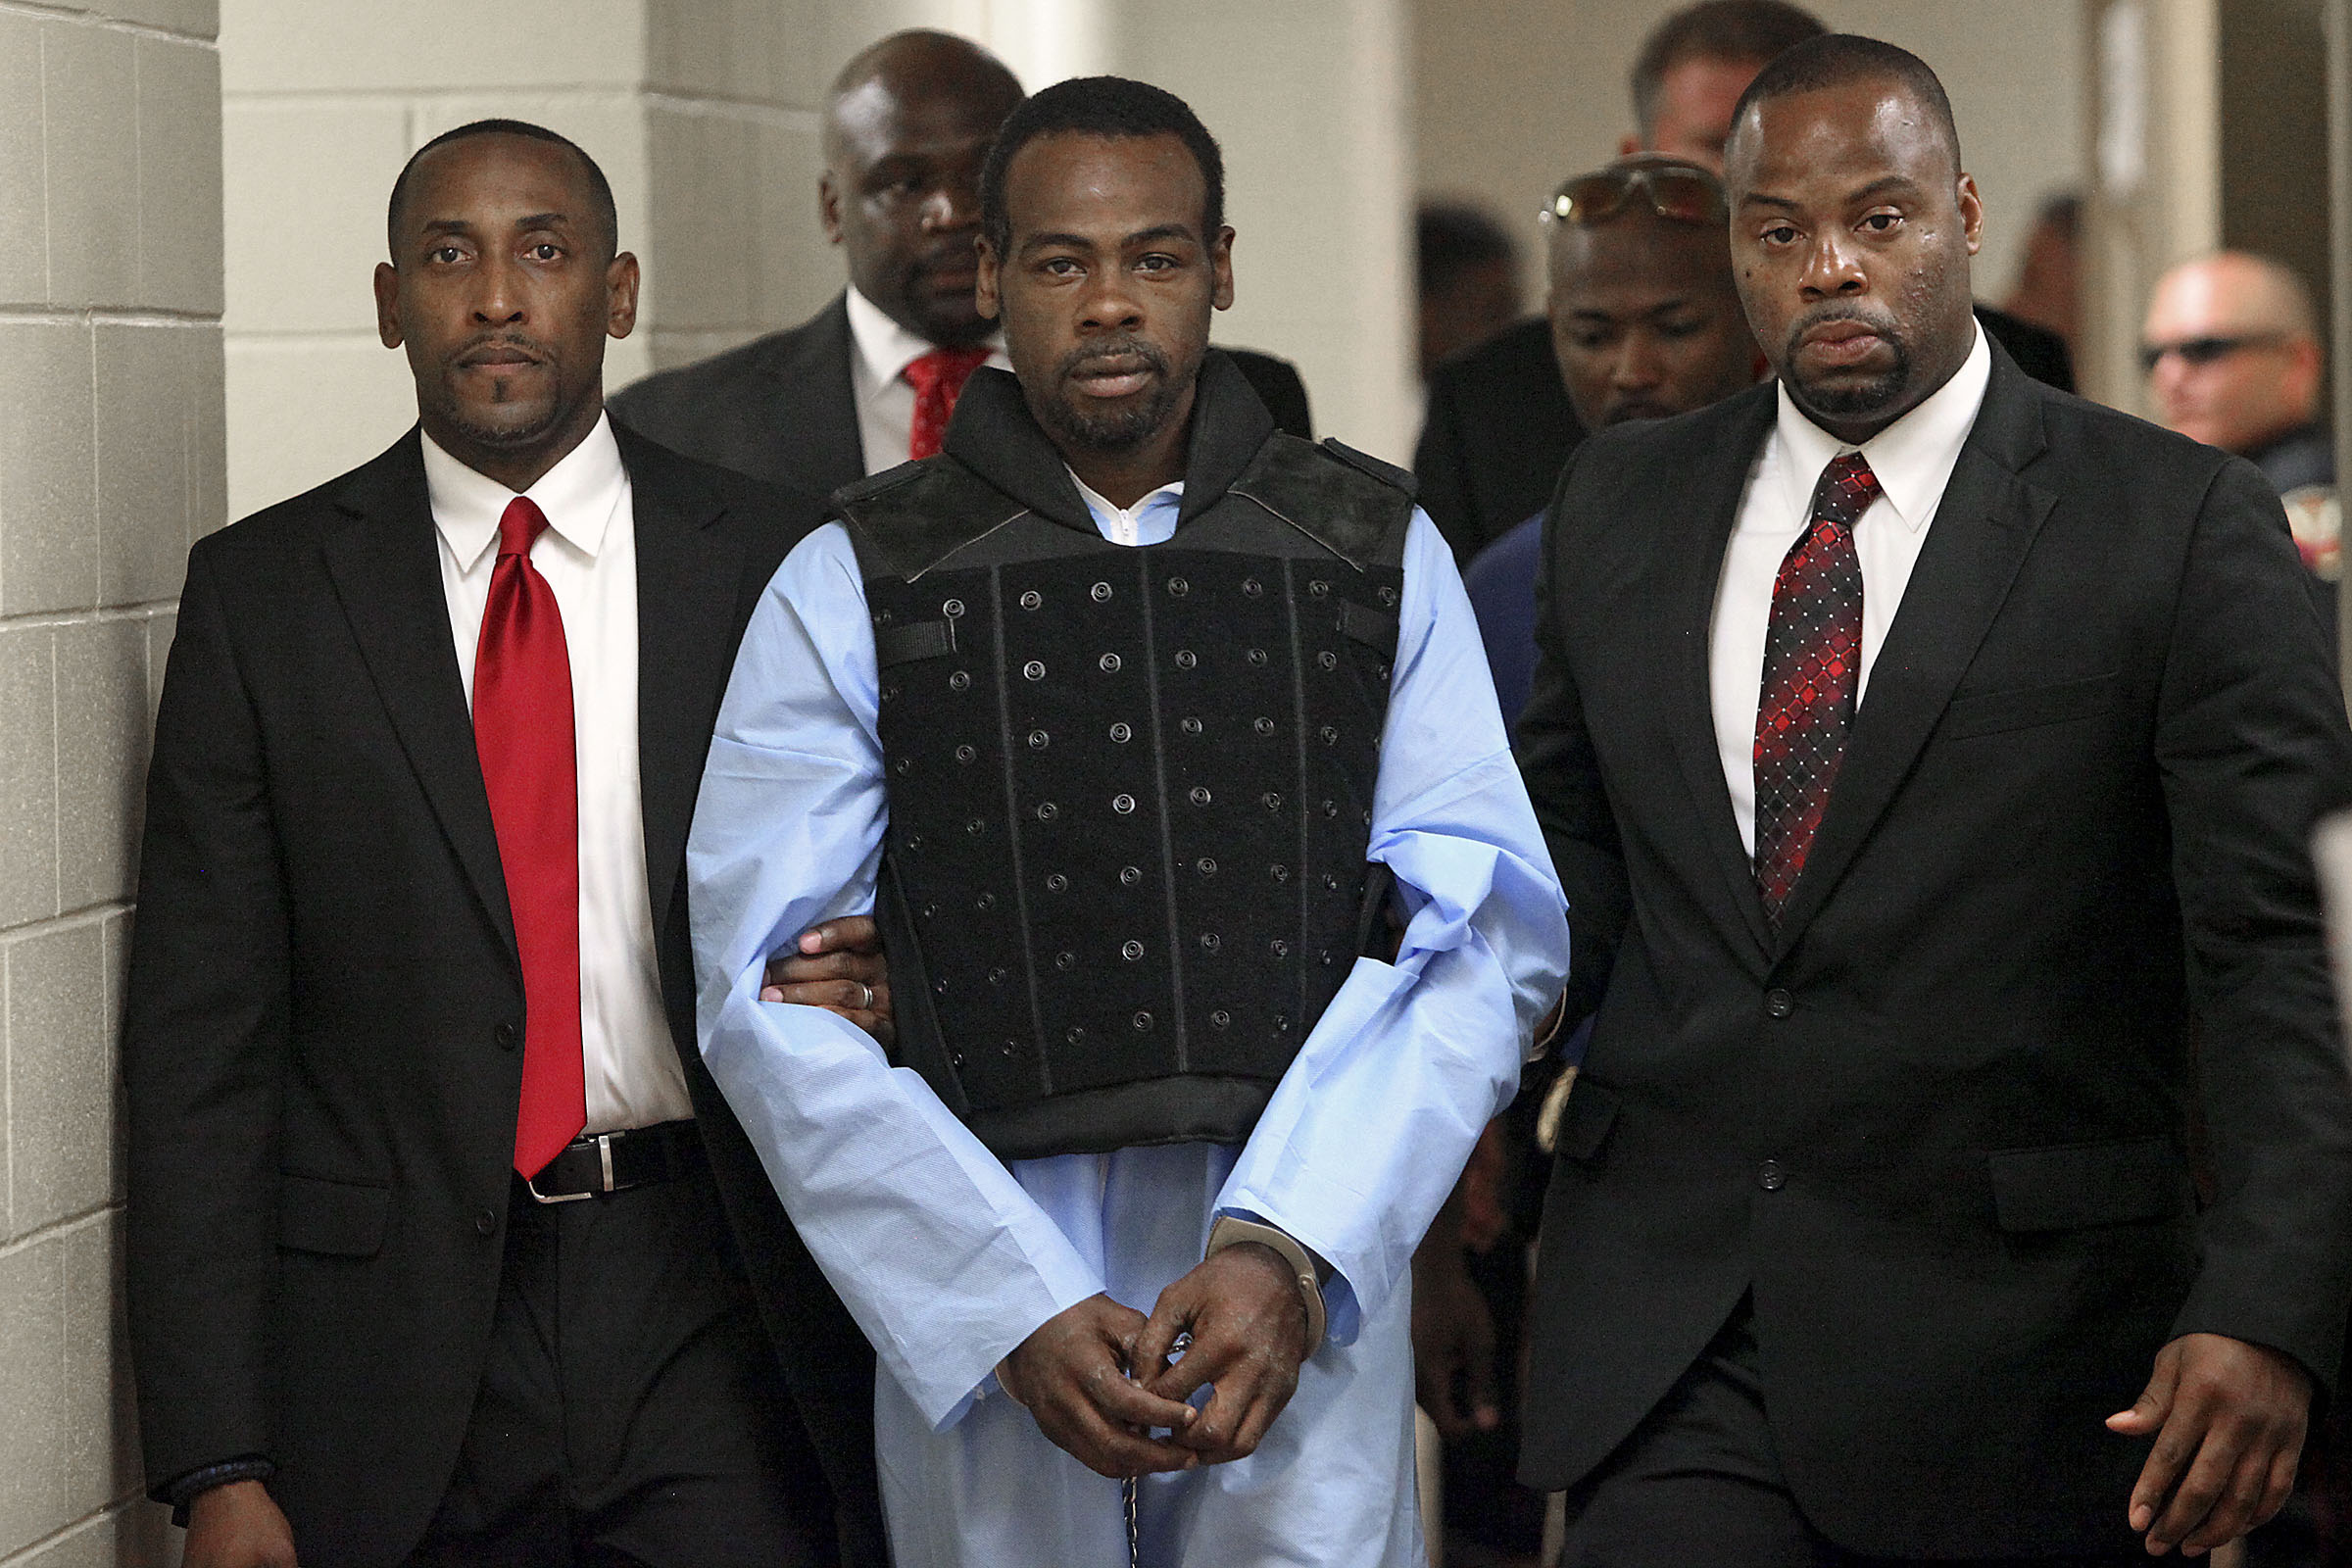 Rafael McCloud is escorted to a holding cell by police investigators in Vicksburg, Miss., on July 1, 2015.